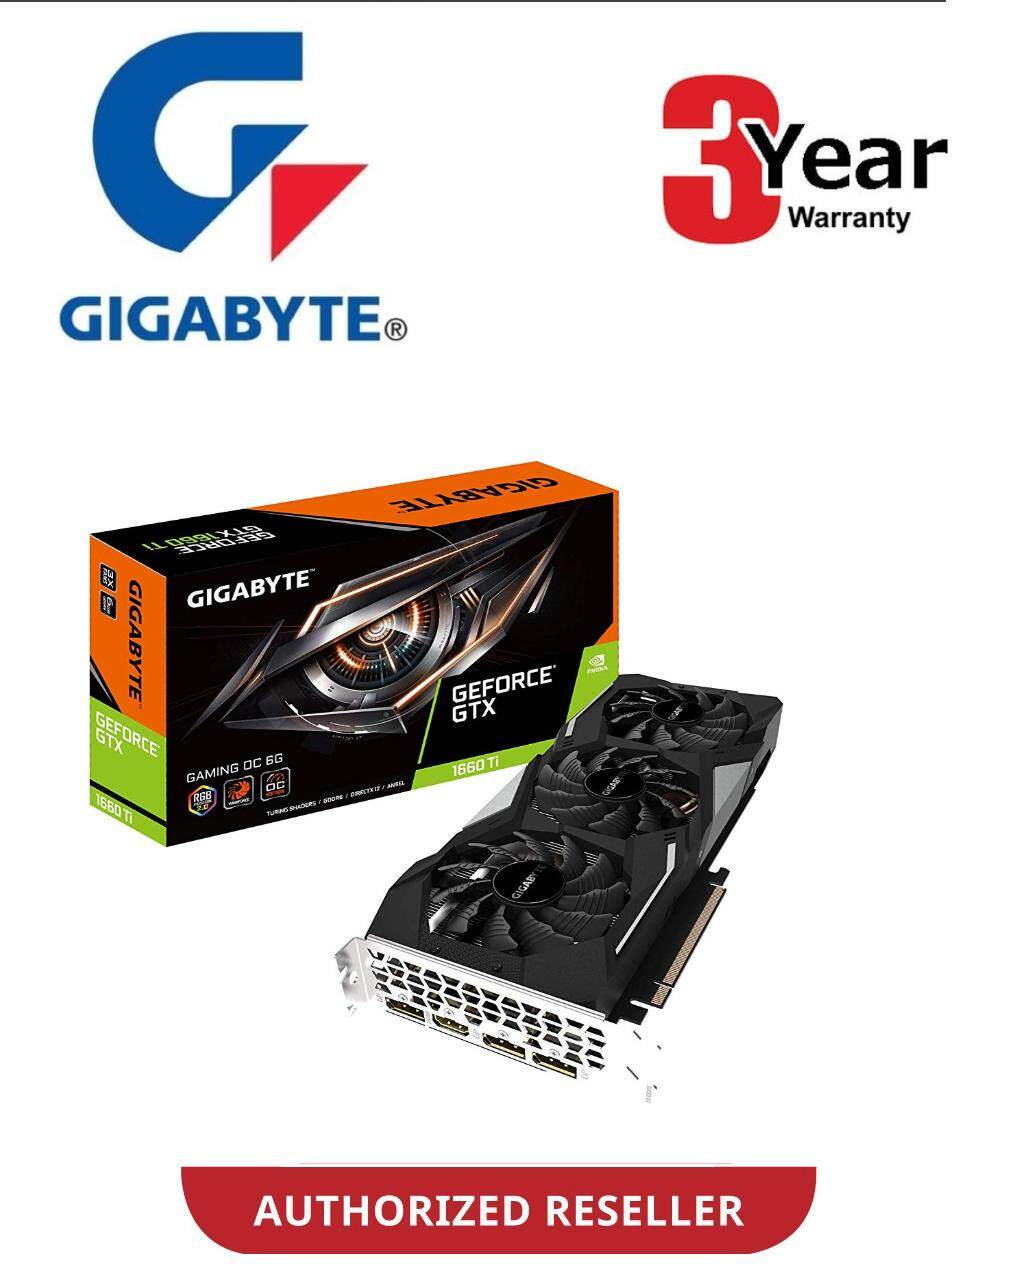 GIGABYTE GEFORCE GTX 1660 Ti GAMING OC 6G GRAPHIC CARD (GV-N166TGAMING OC-6GD)